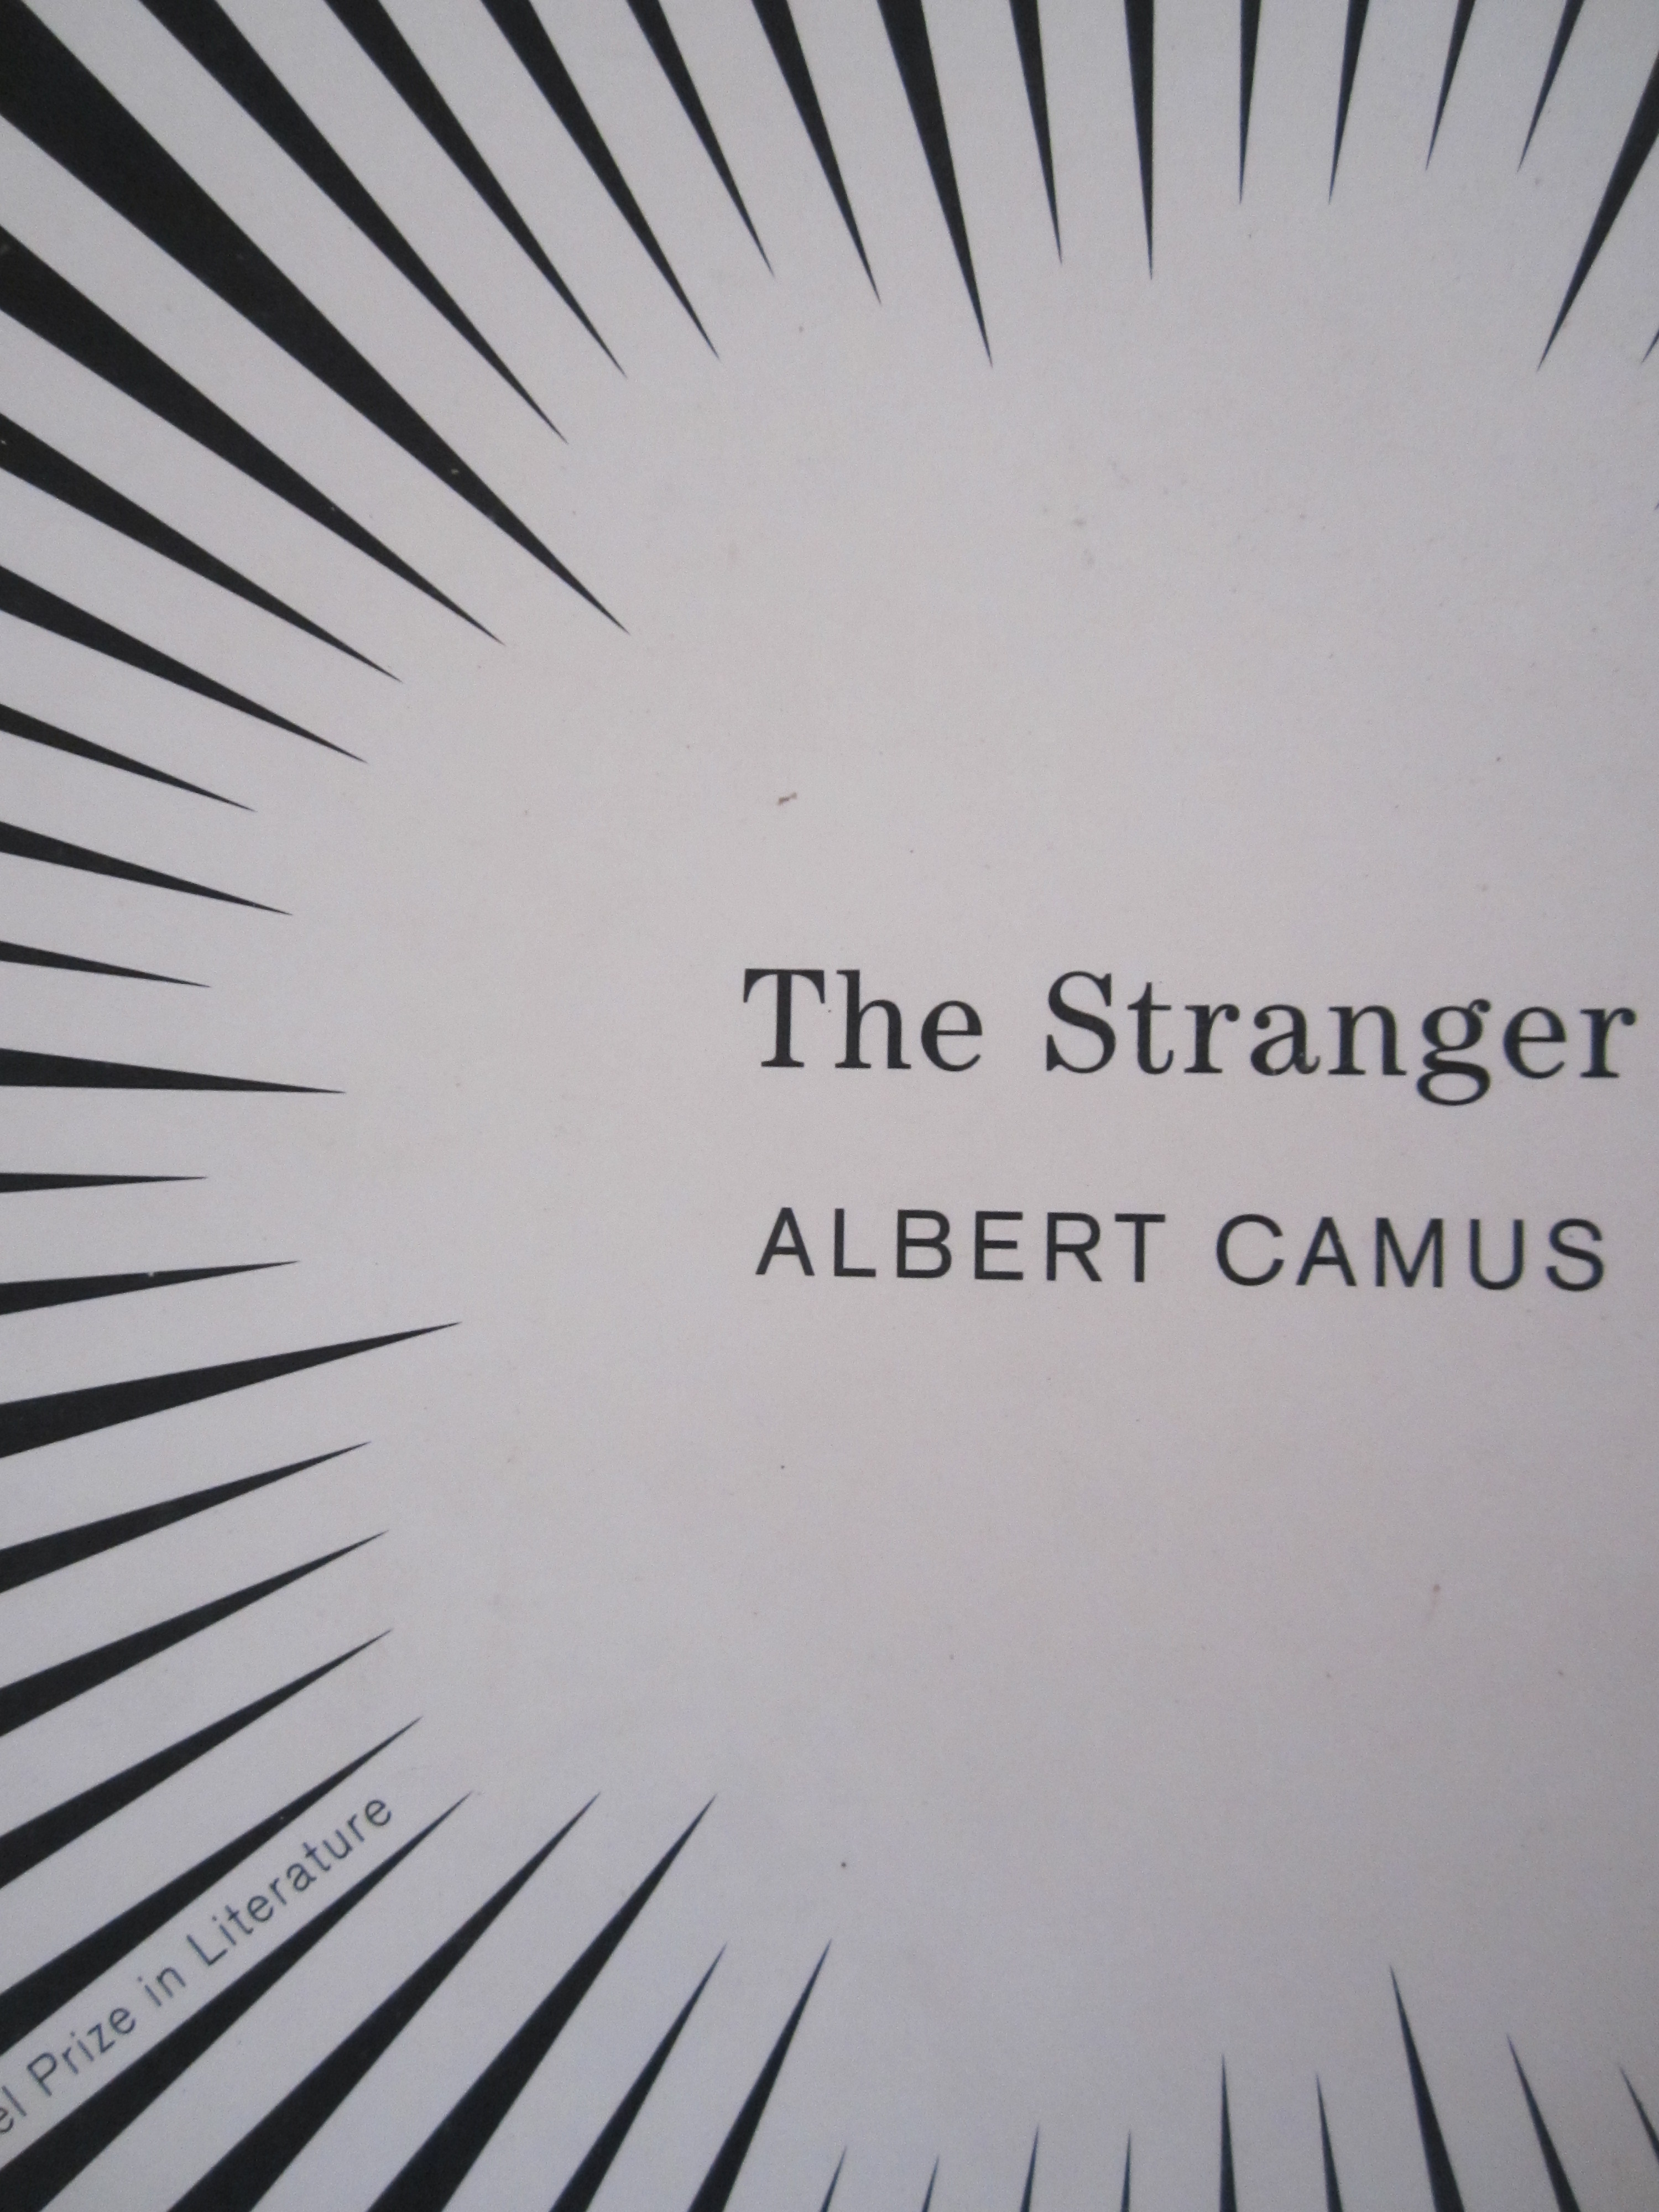 the stranger by albert camus cg fewston 4561